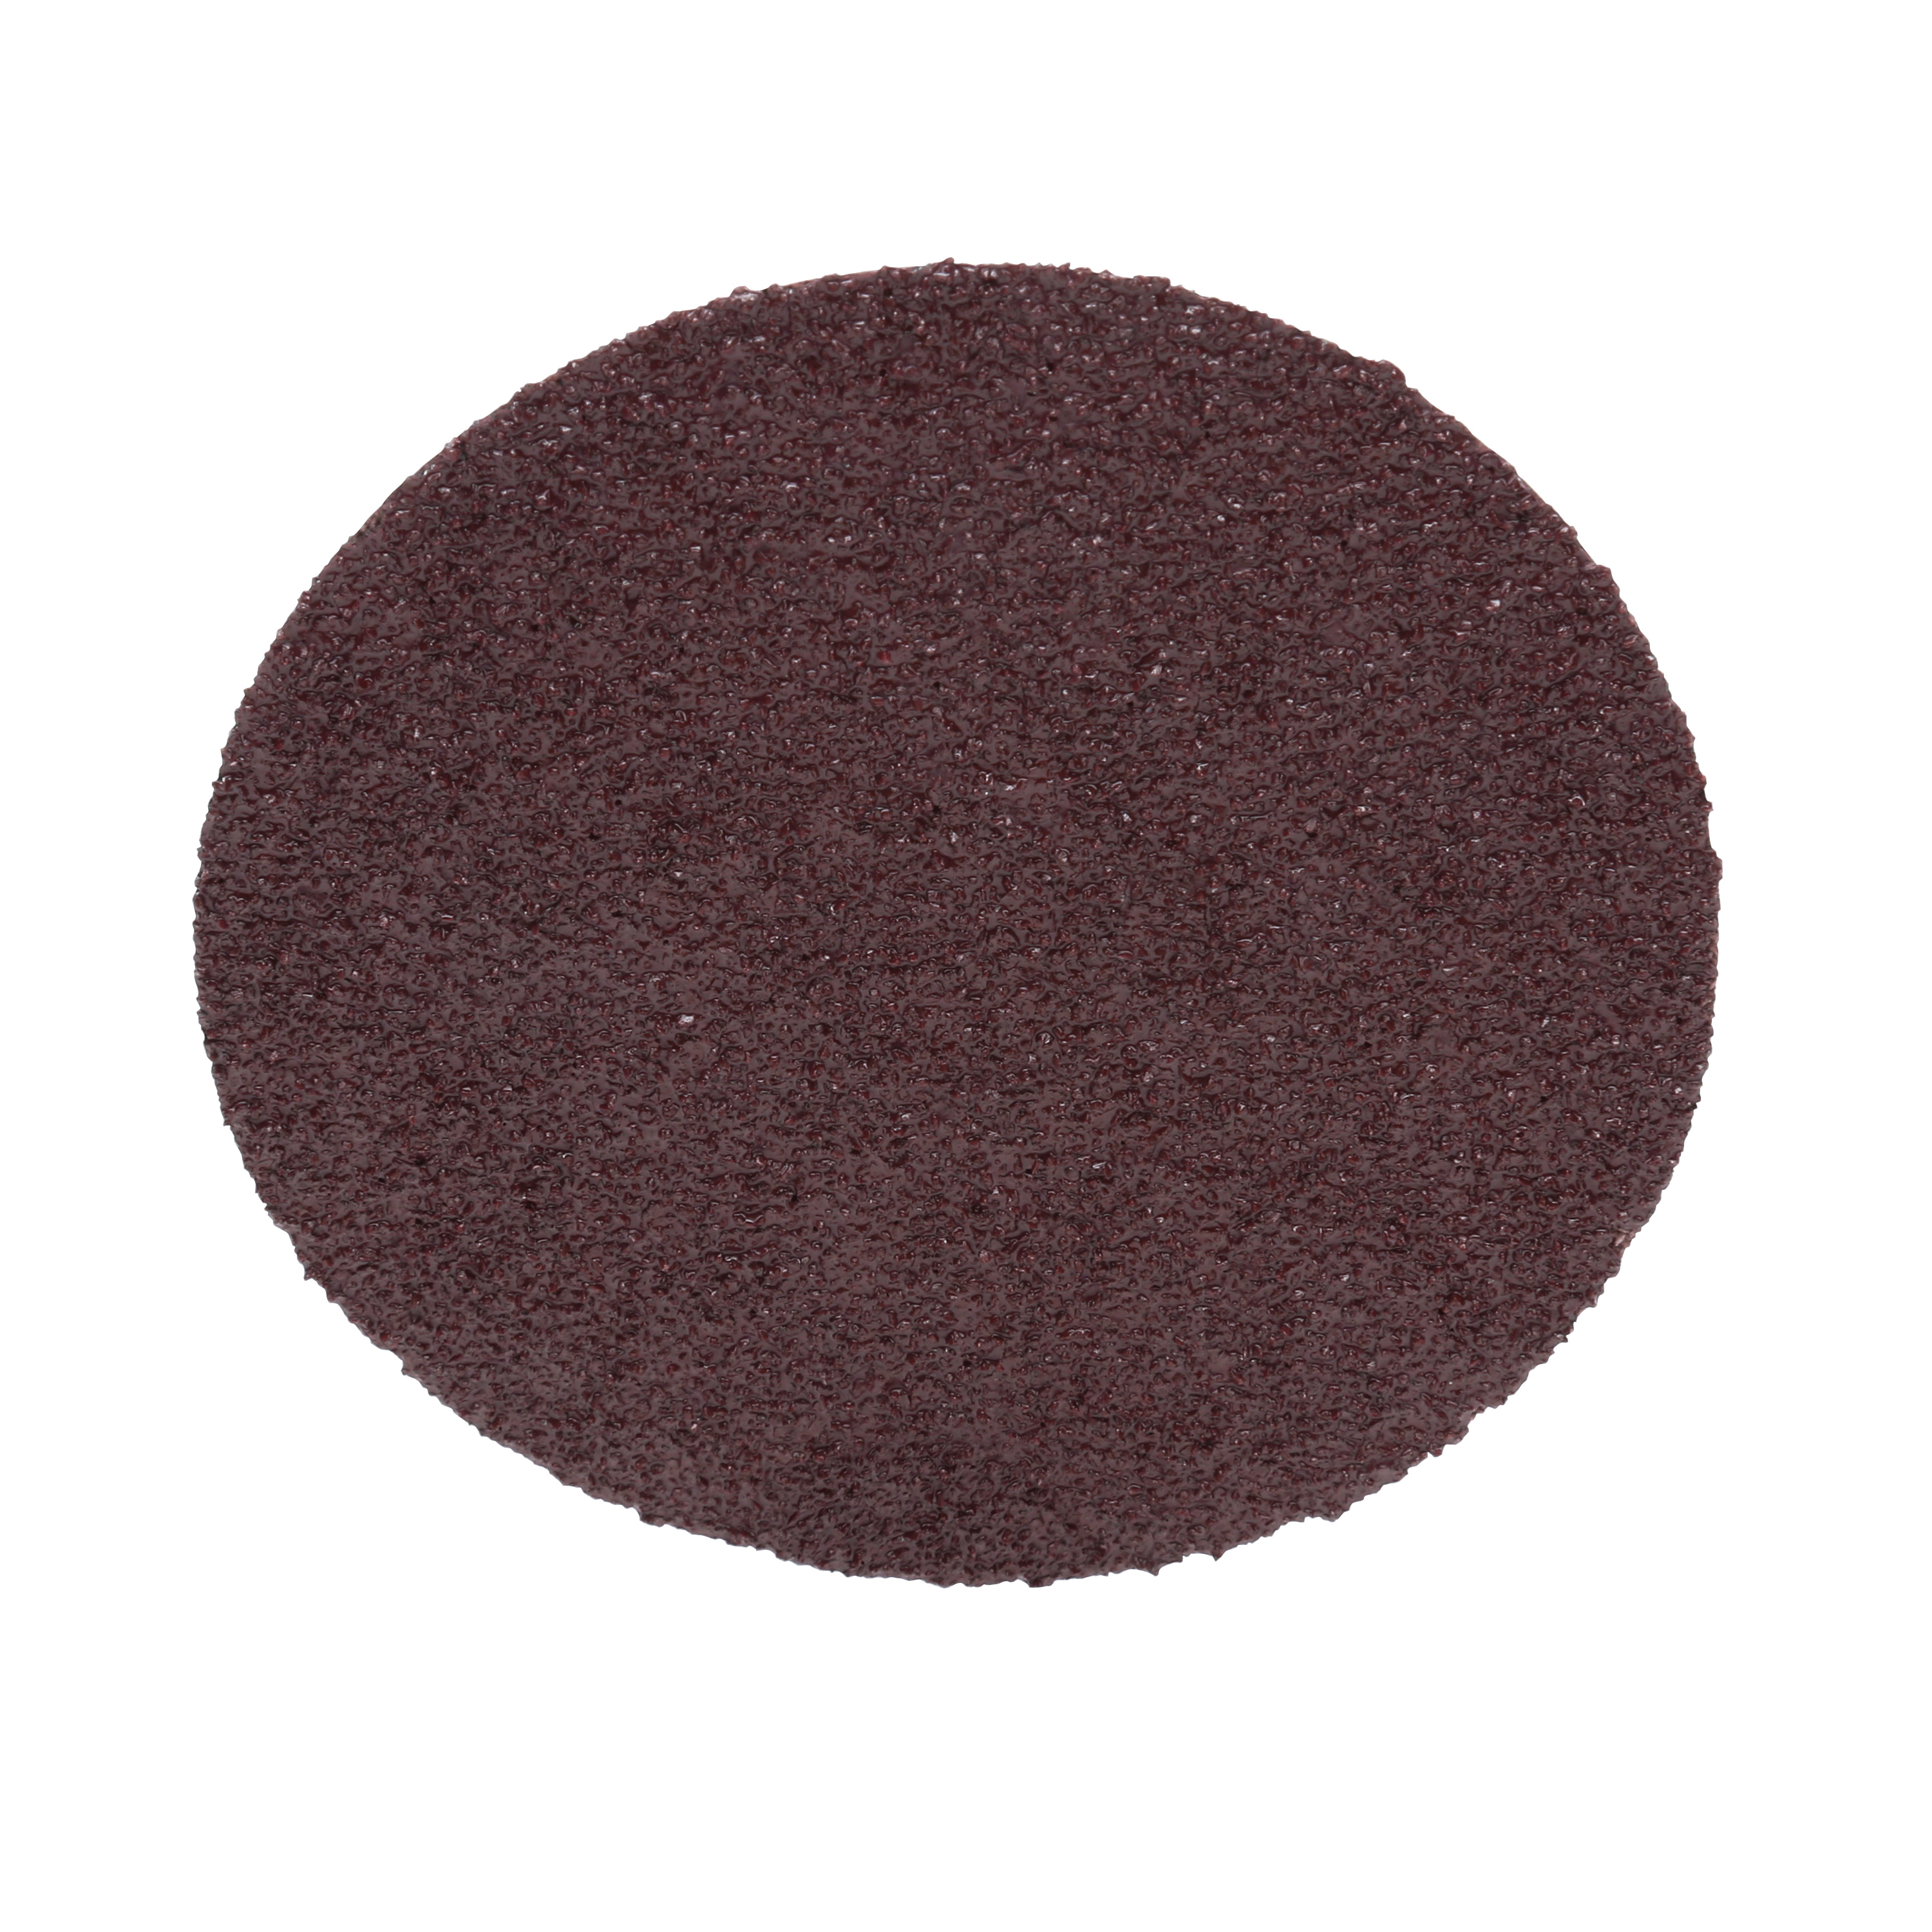 3M™ 051144-01335 Heavy Duty PSA Close Coated Abrasive Disc, 3 in Dia, 40 Grit, Coarse Grade, Aluminum Oxide Abrasive, Cloth Backing